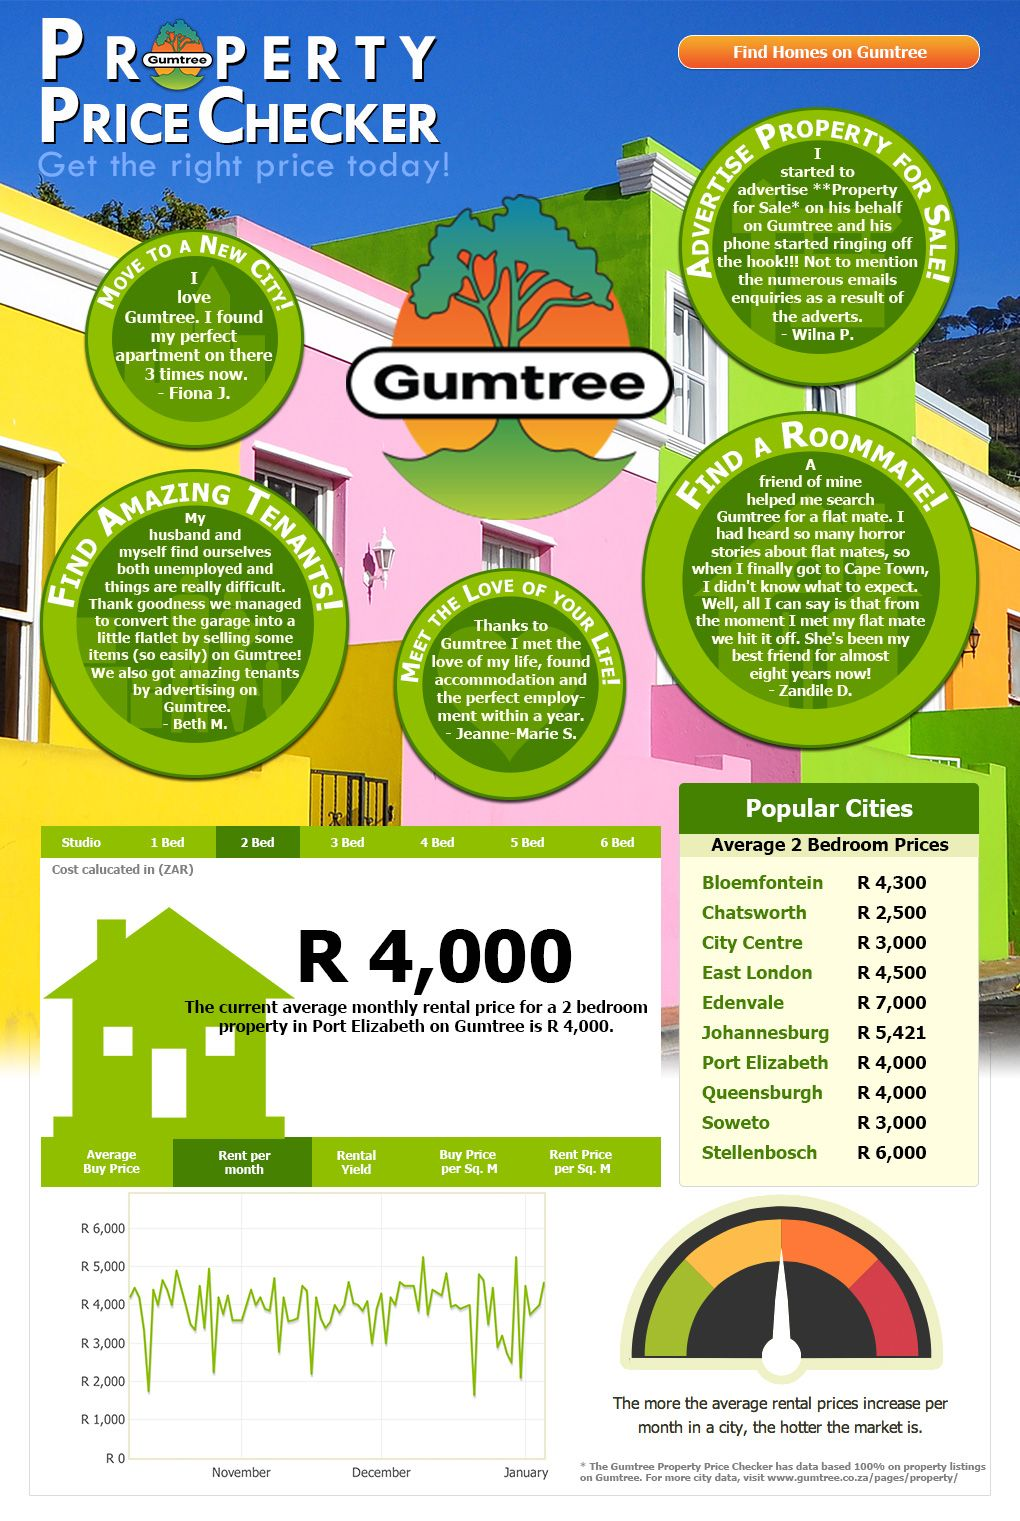 Gumtree information